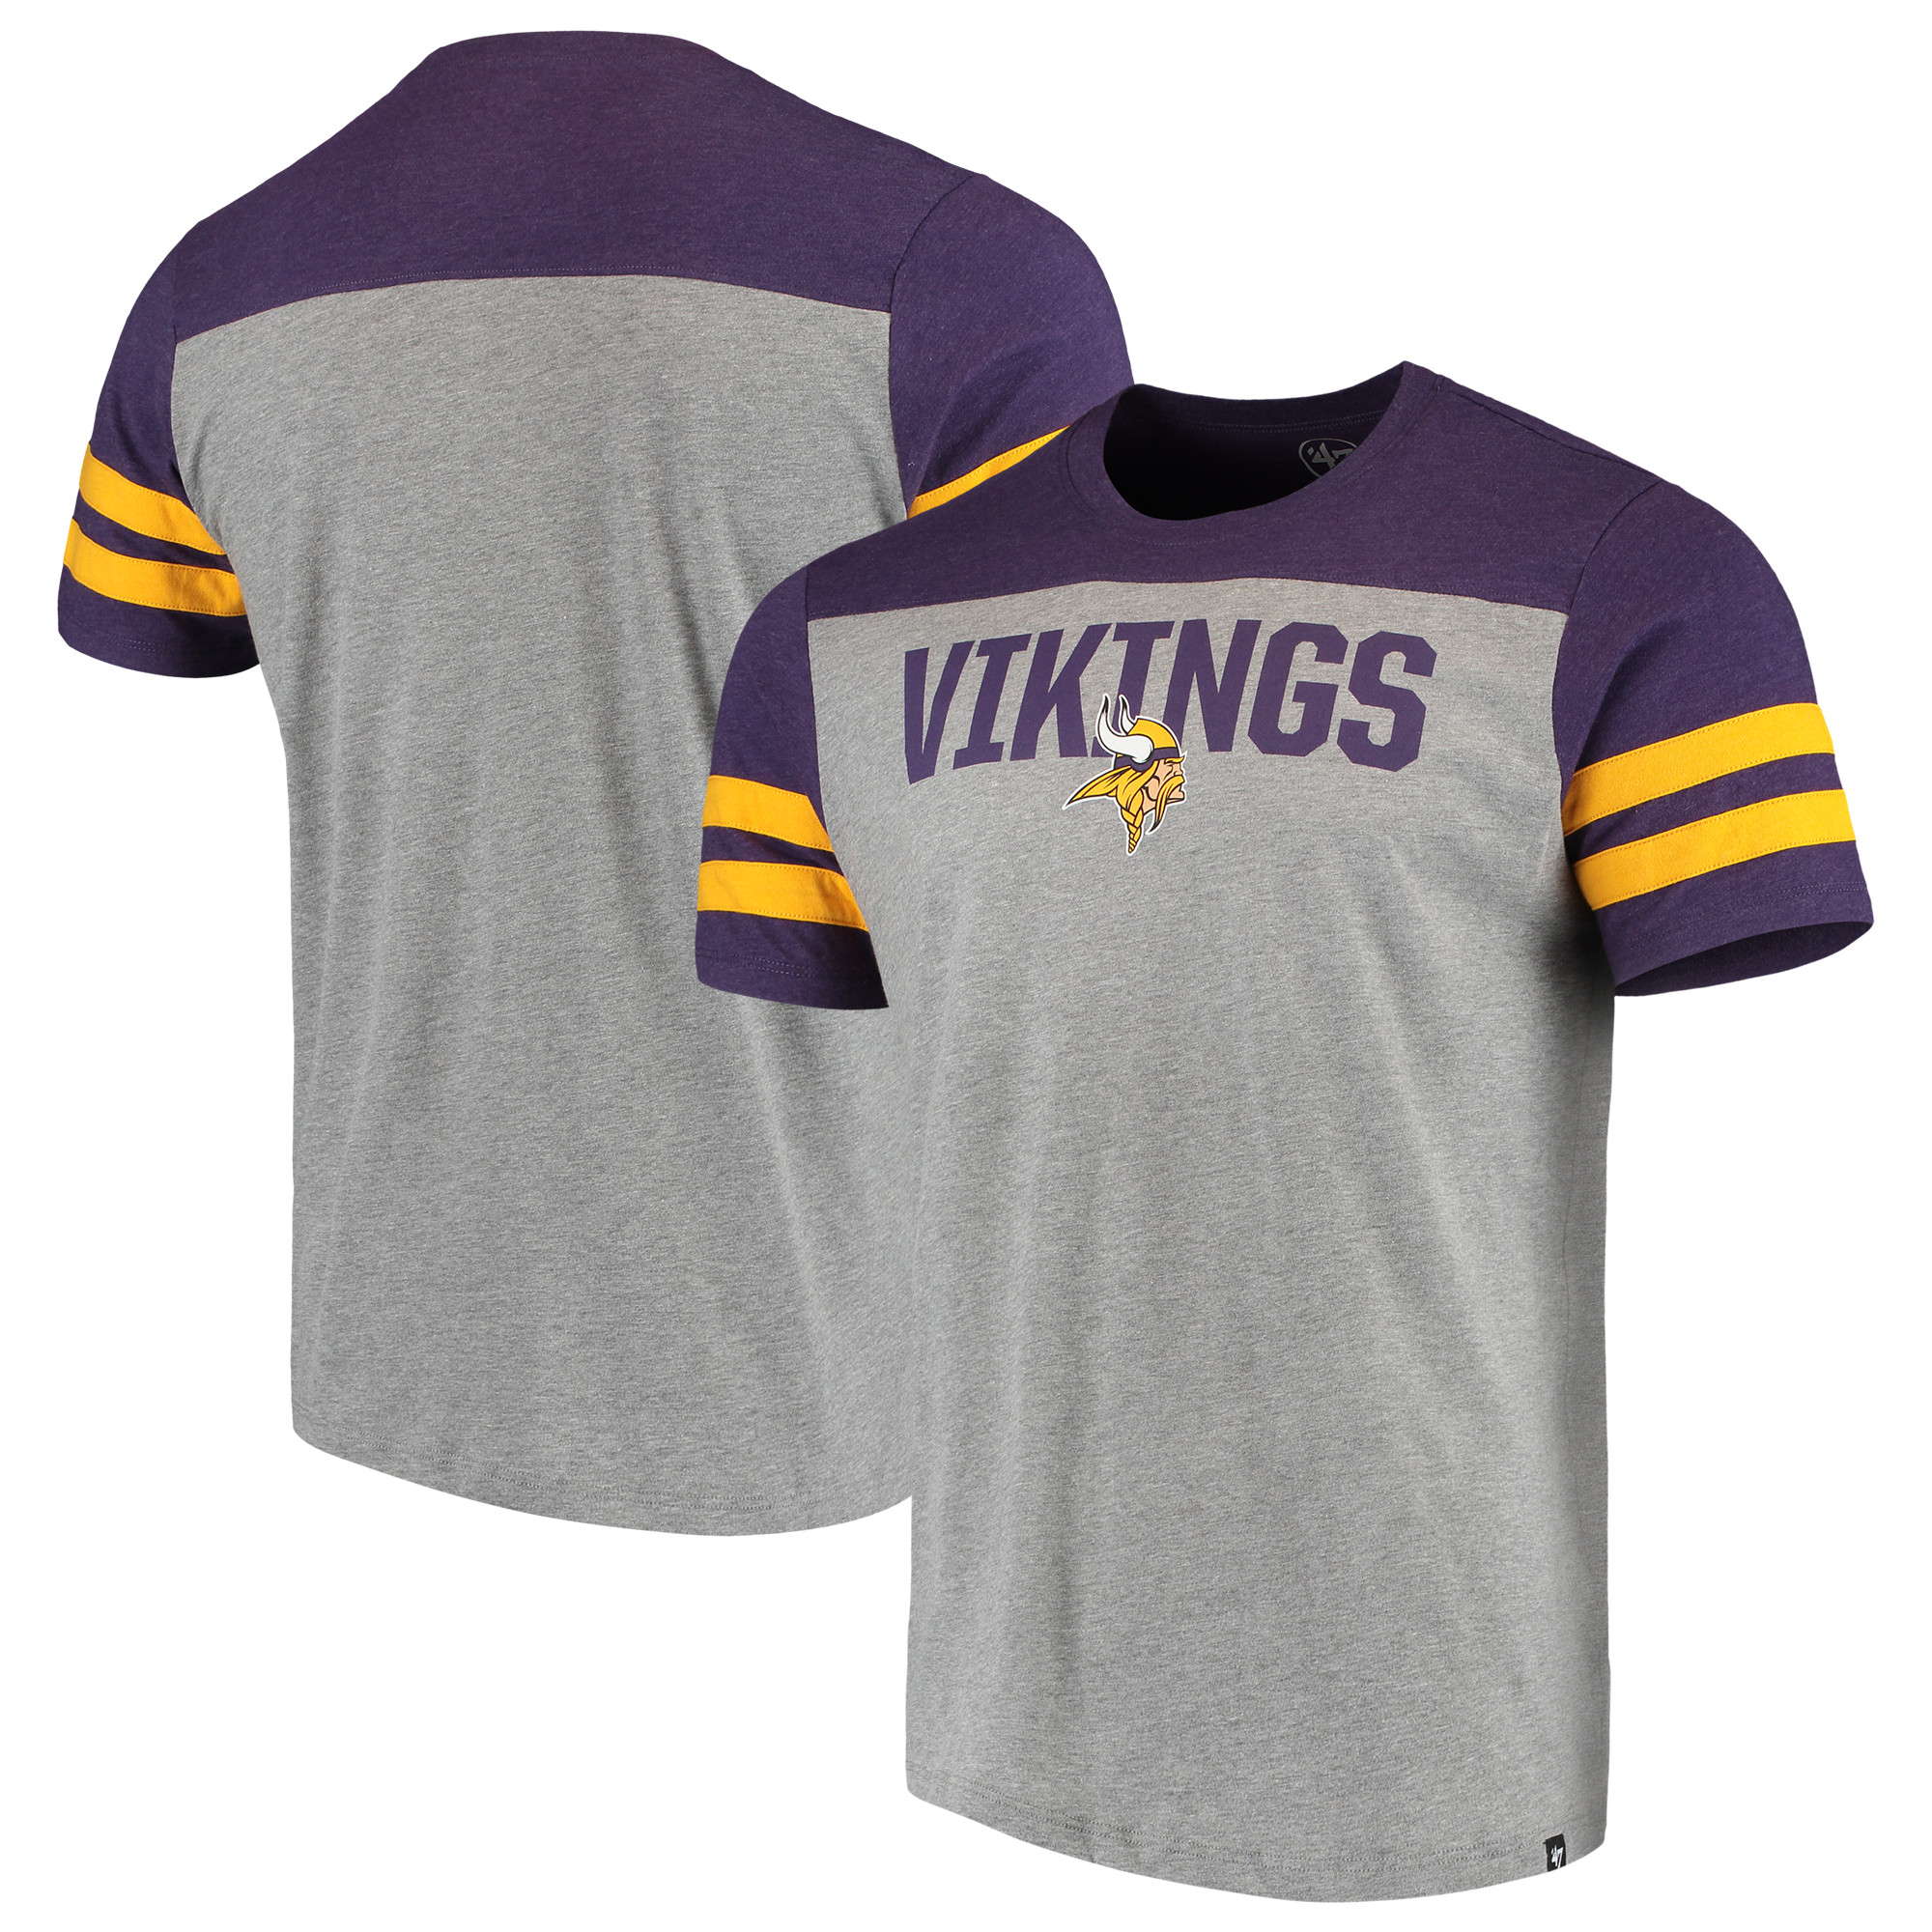 Minnesota Vikings '47 Versus Club T-Shirt - Heathered Gray/Heathered Purple